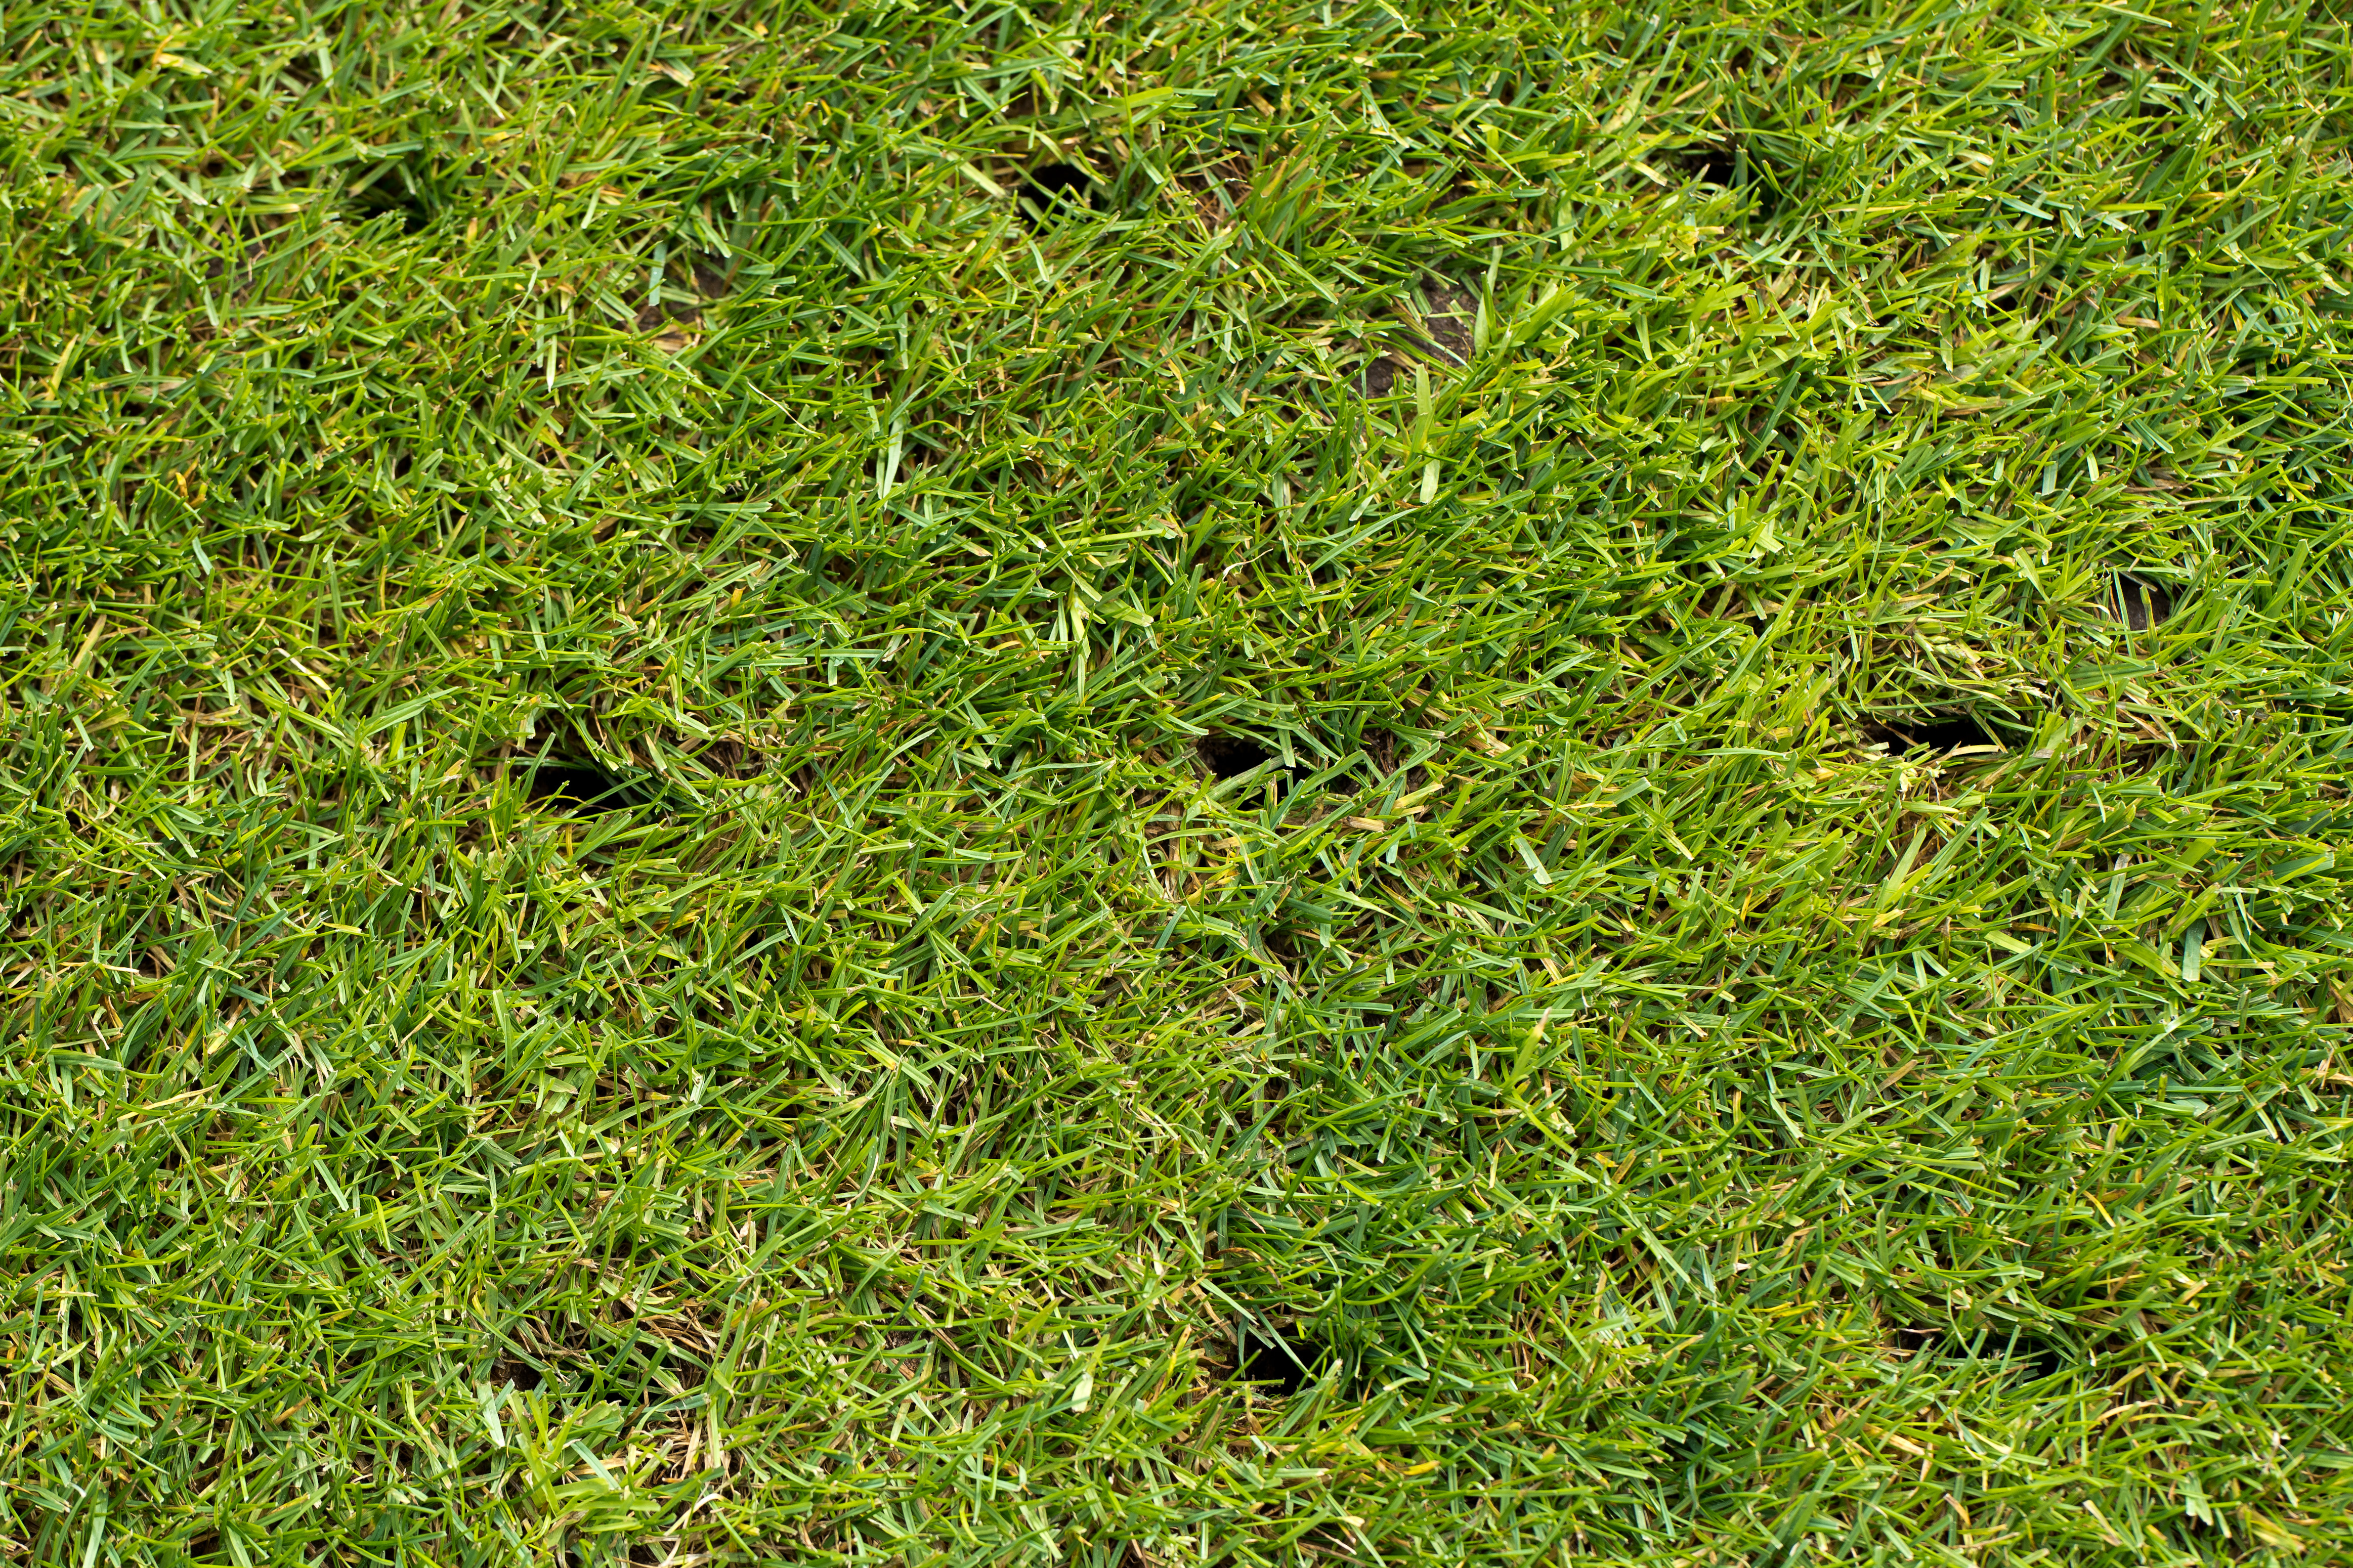 lawn with holes on a football field after aerating